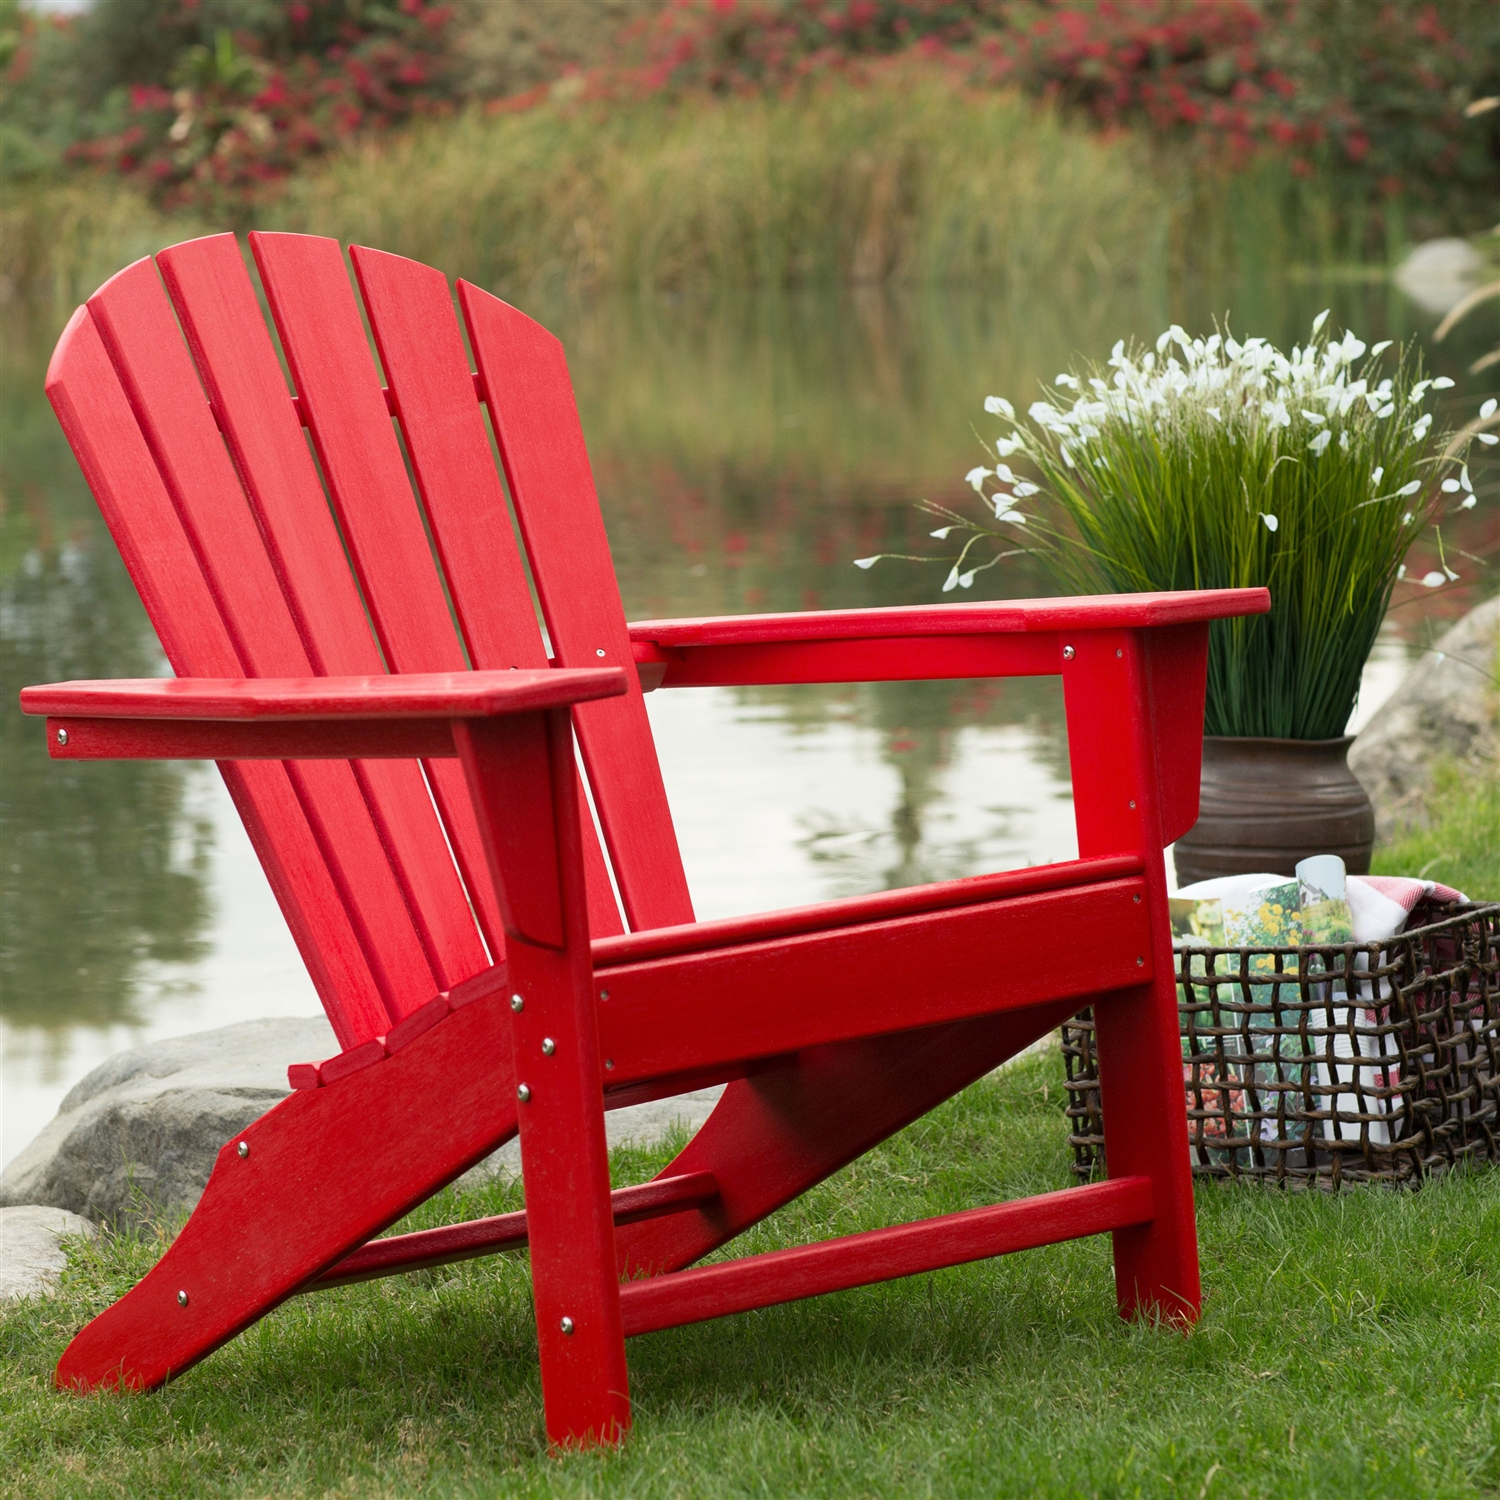 Red Adirondack Chairs Outdoor Patio Seating Garden Adirondack Chair In Red Heavy Duty Resin